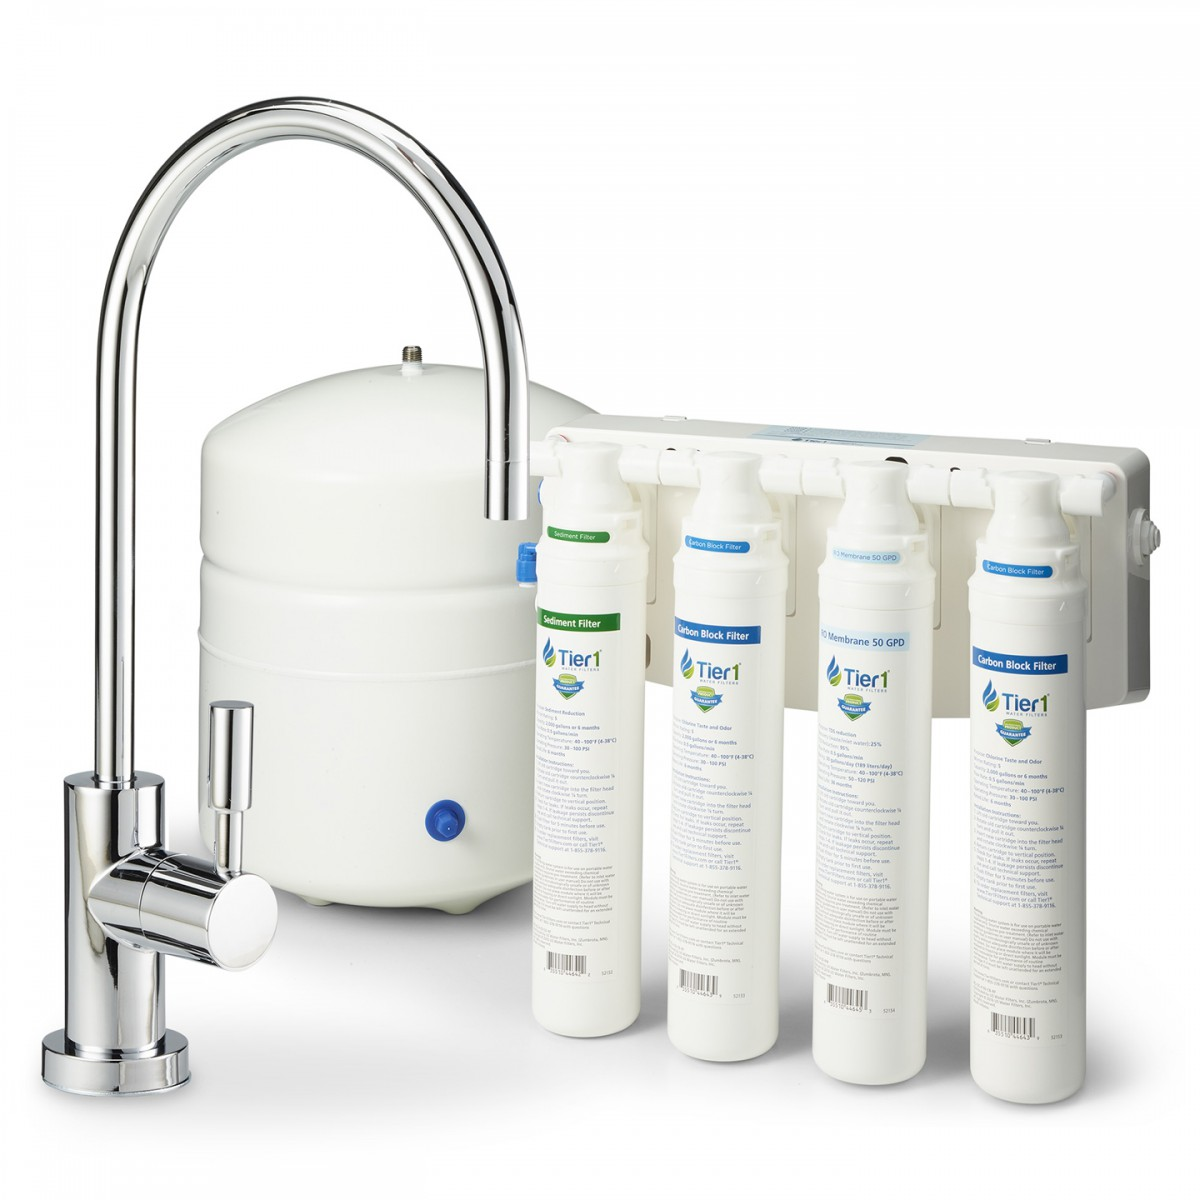 Tier1 Ro Qc 4 50 Stage Quick Change Reverse Osmosis Water Filter System Gpd